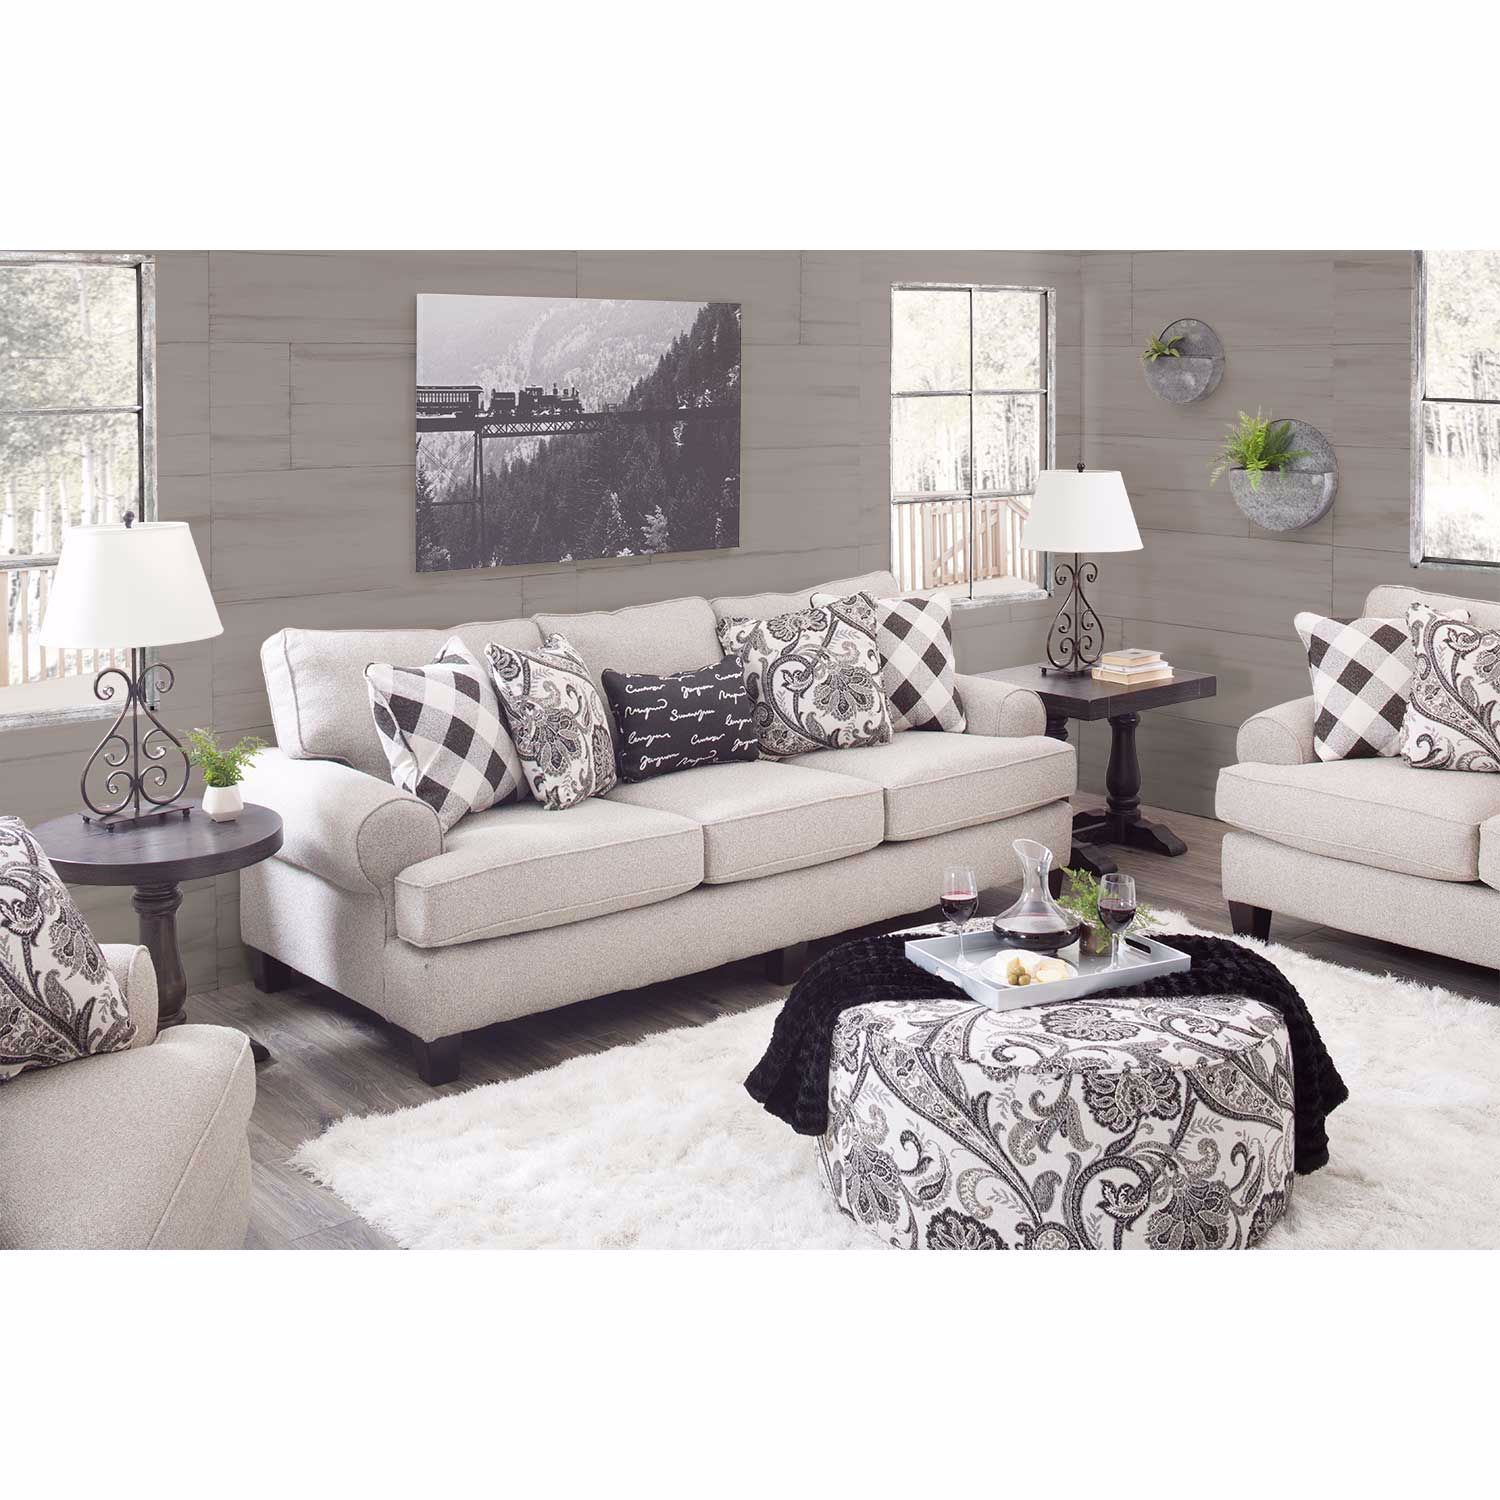 Picture of Abby Road Sofa